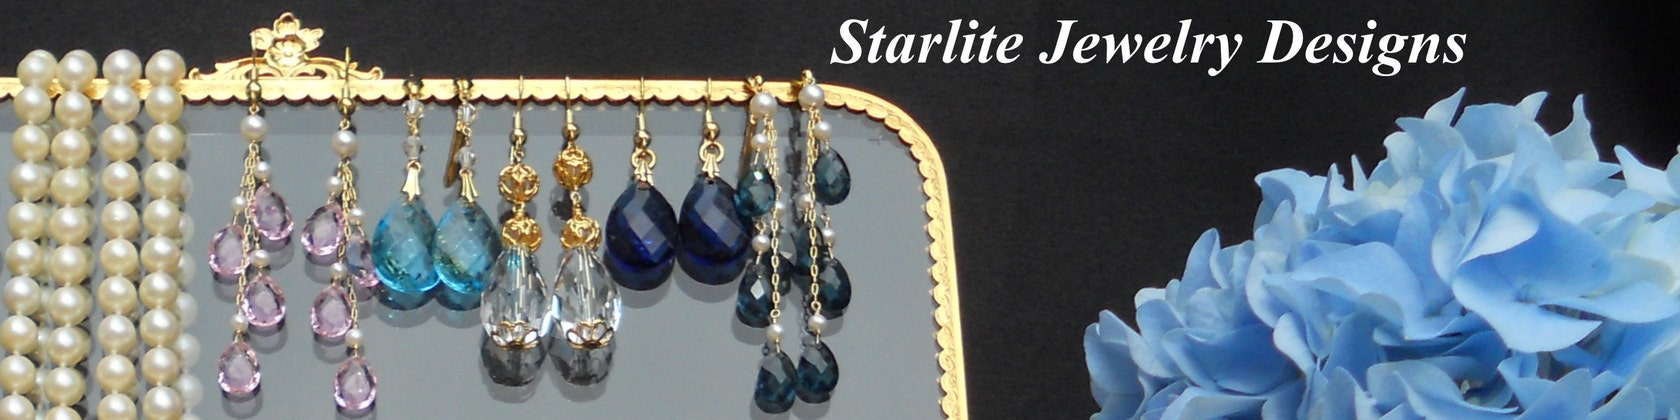 Welcome to Starlite Jewelry Designs by starlitedesigns on Etsy